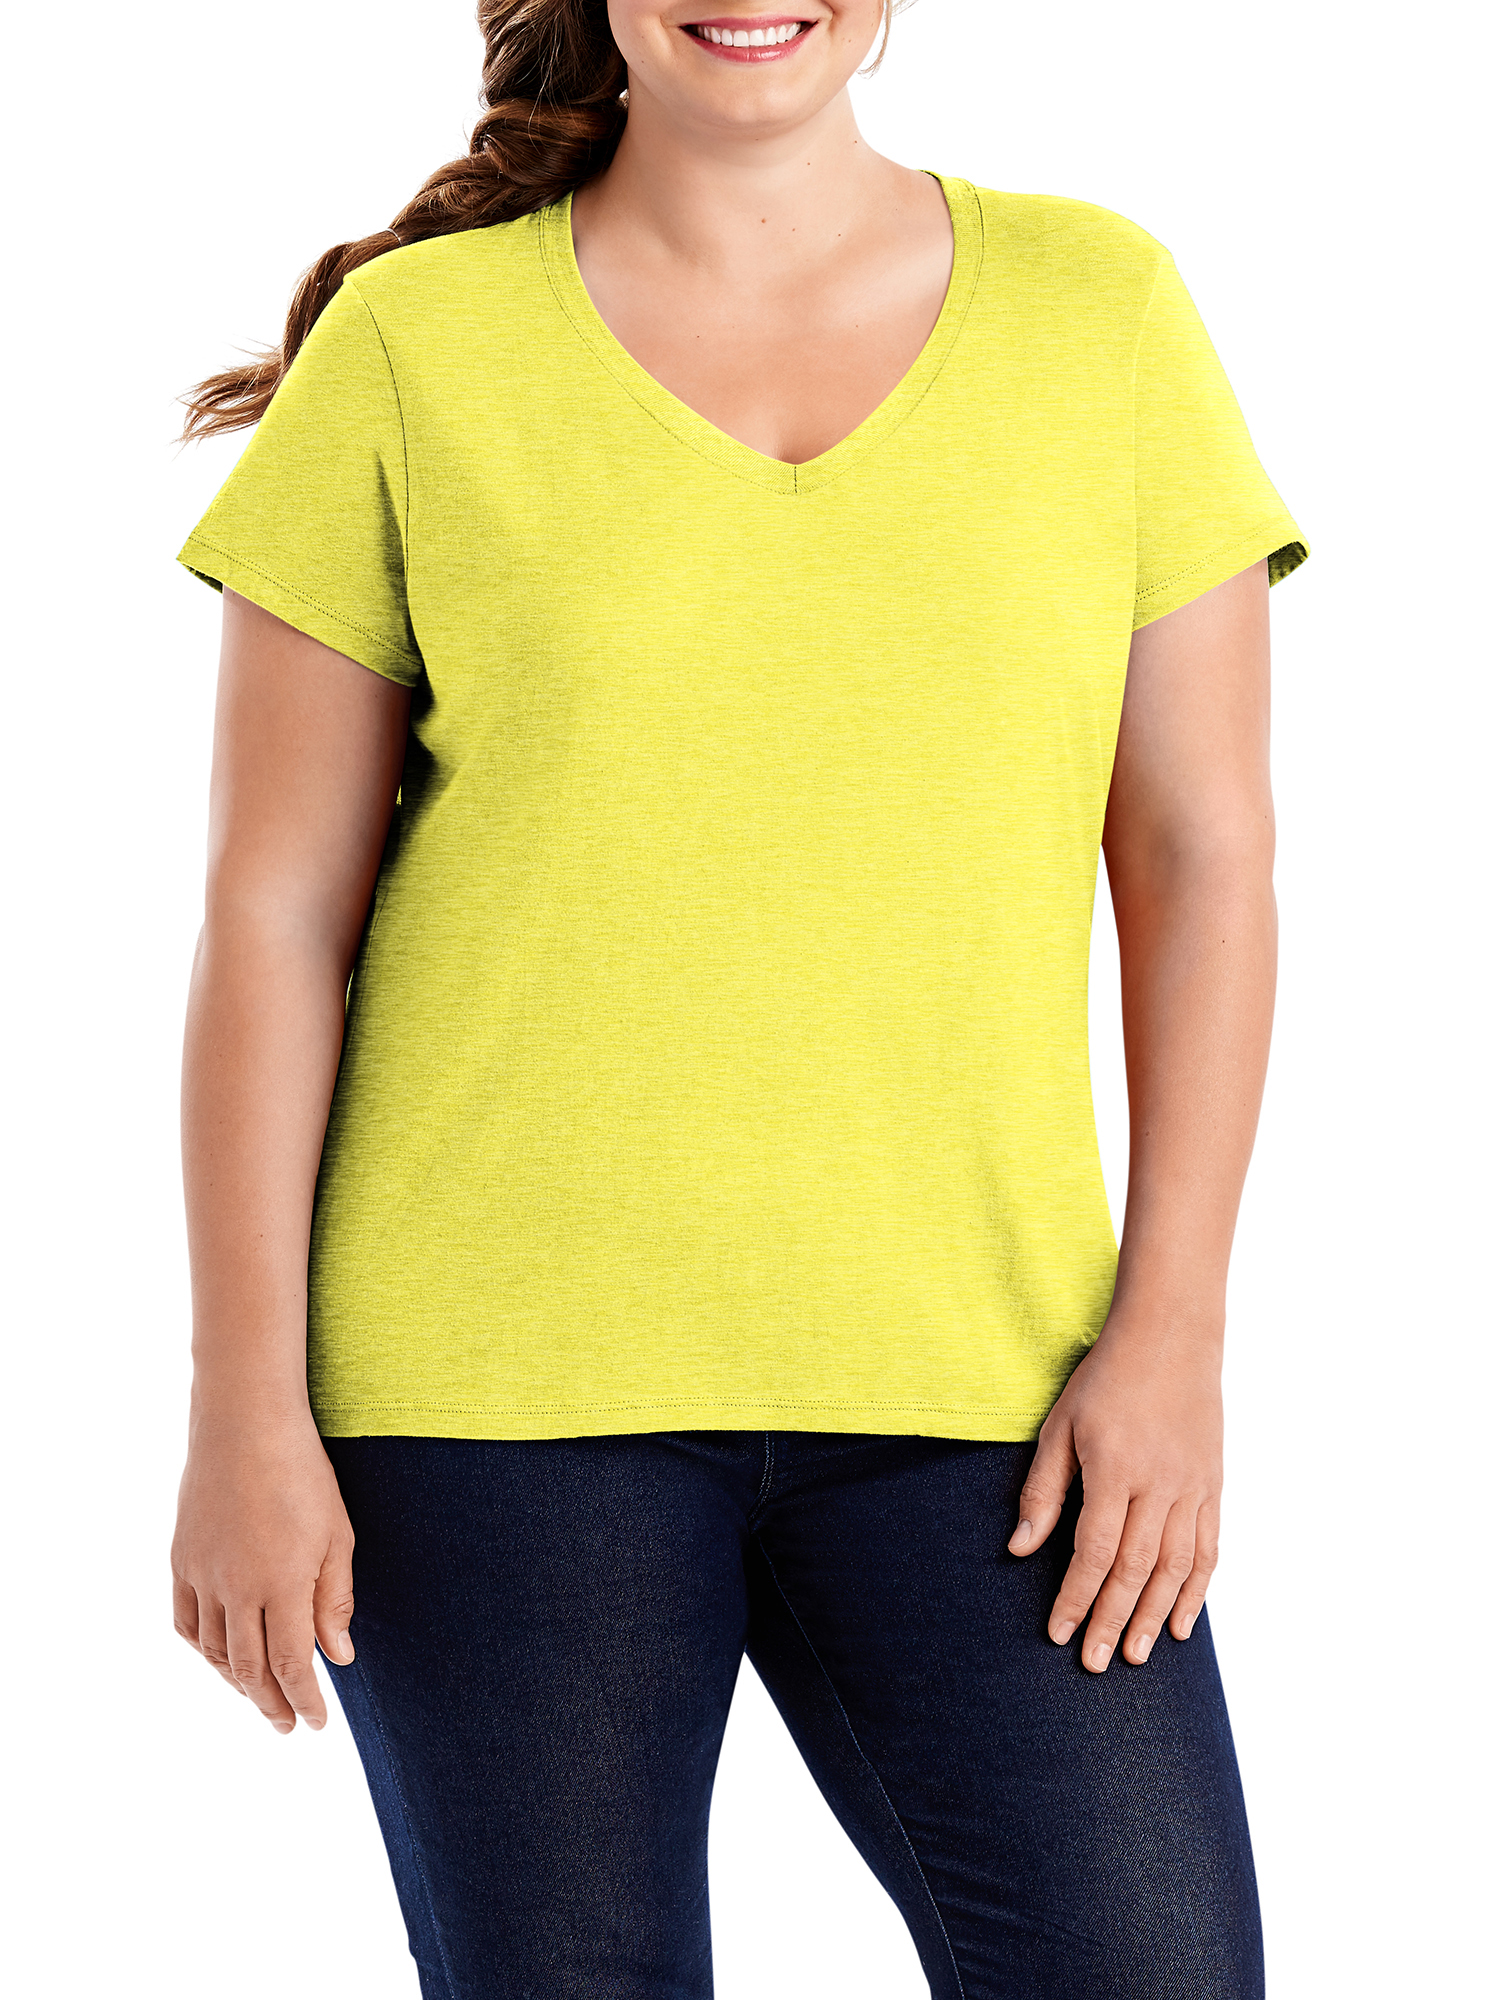 Women's Plus-Size X-temp Short Sleeve V-neck